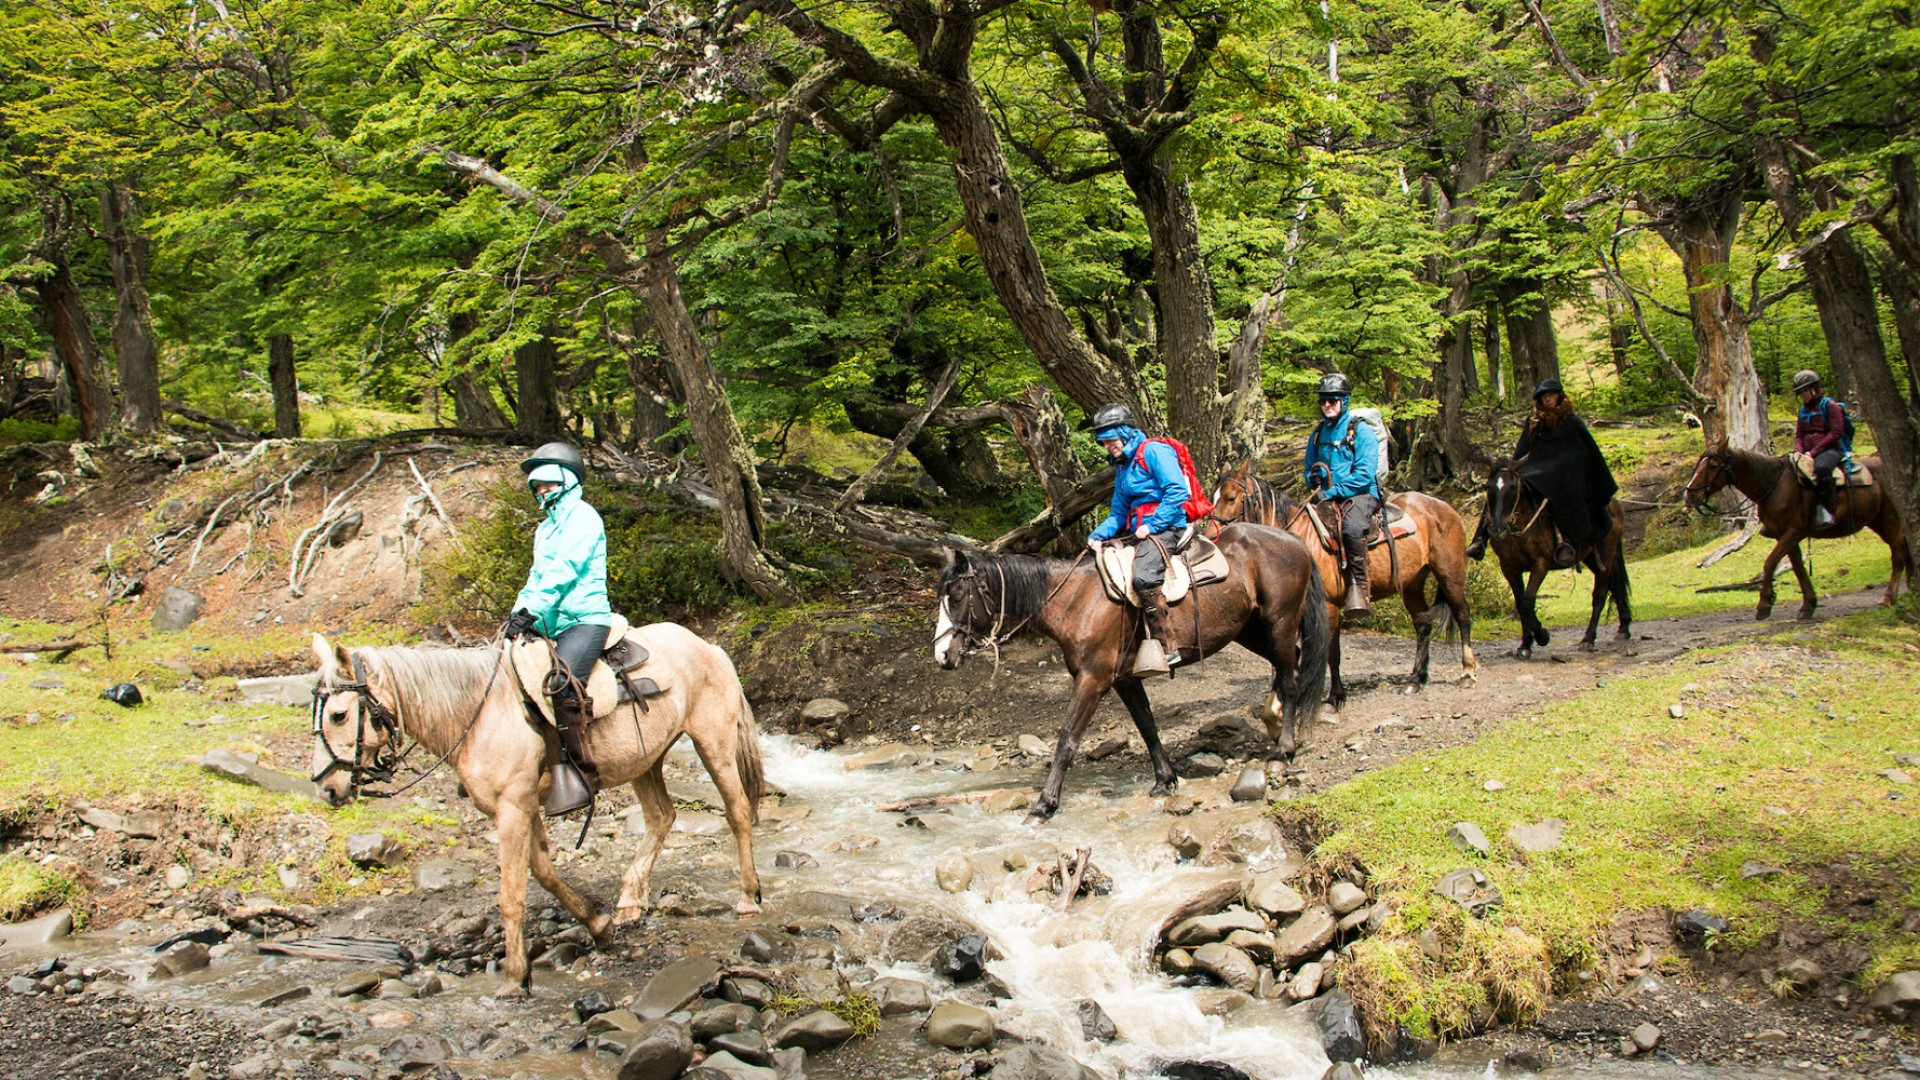 horseback riding in wilderness